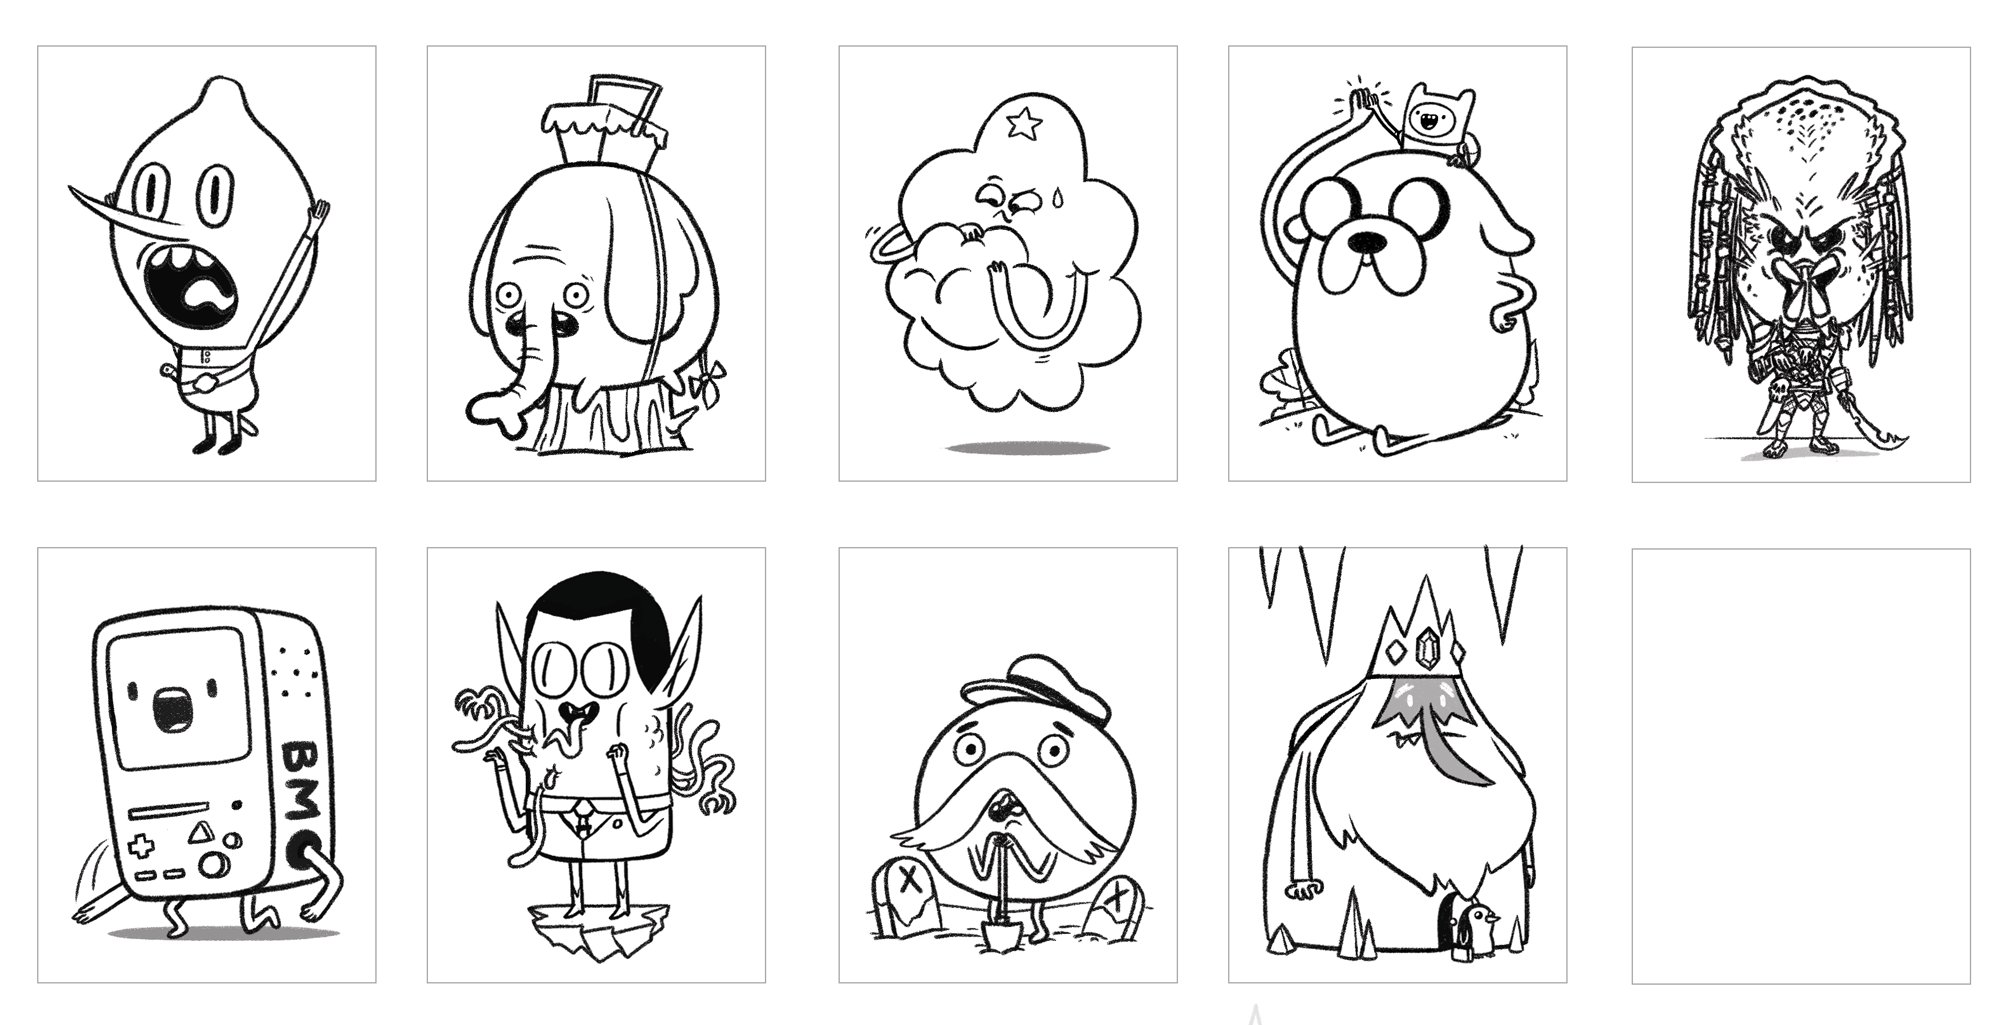 Heroes-Sketches-03.png